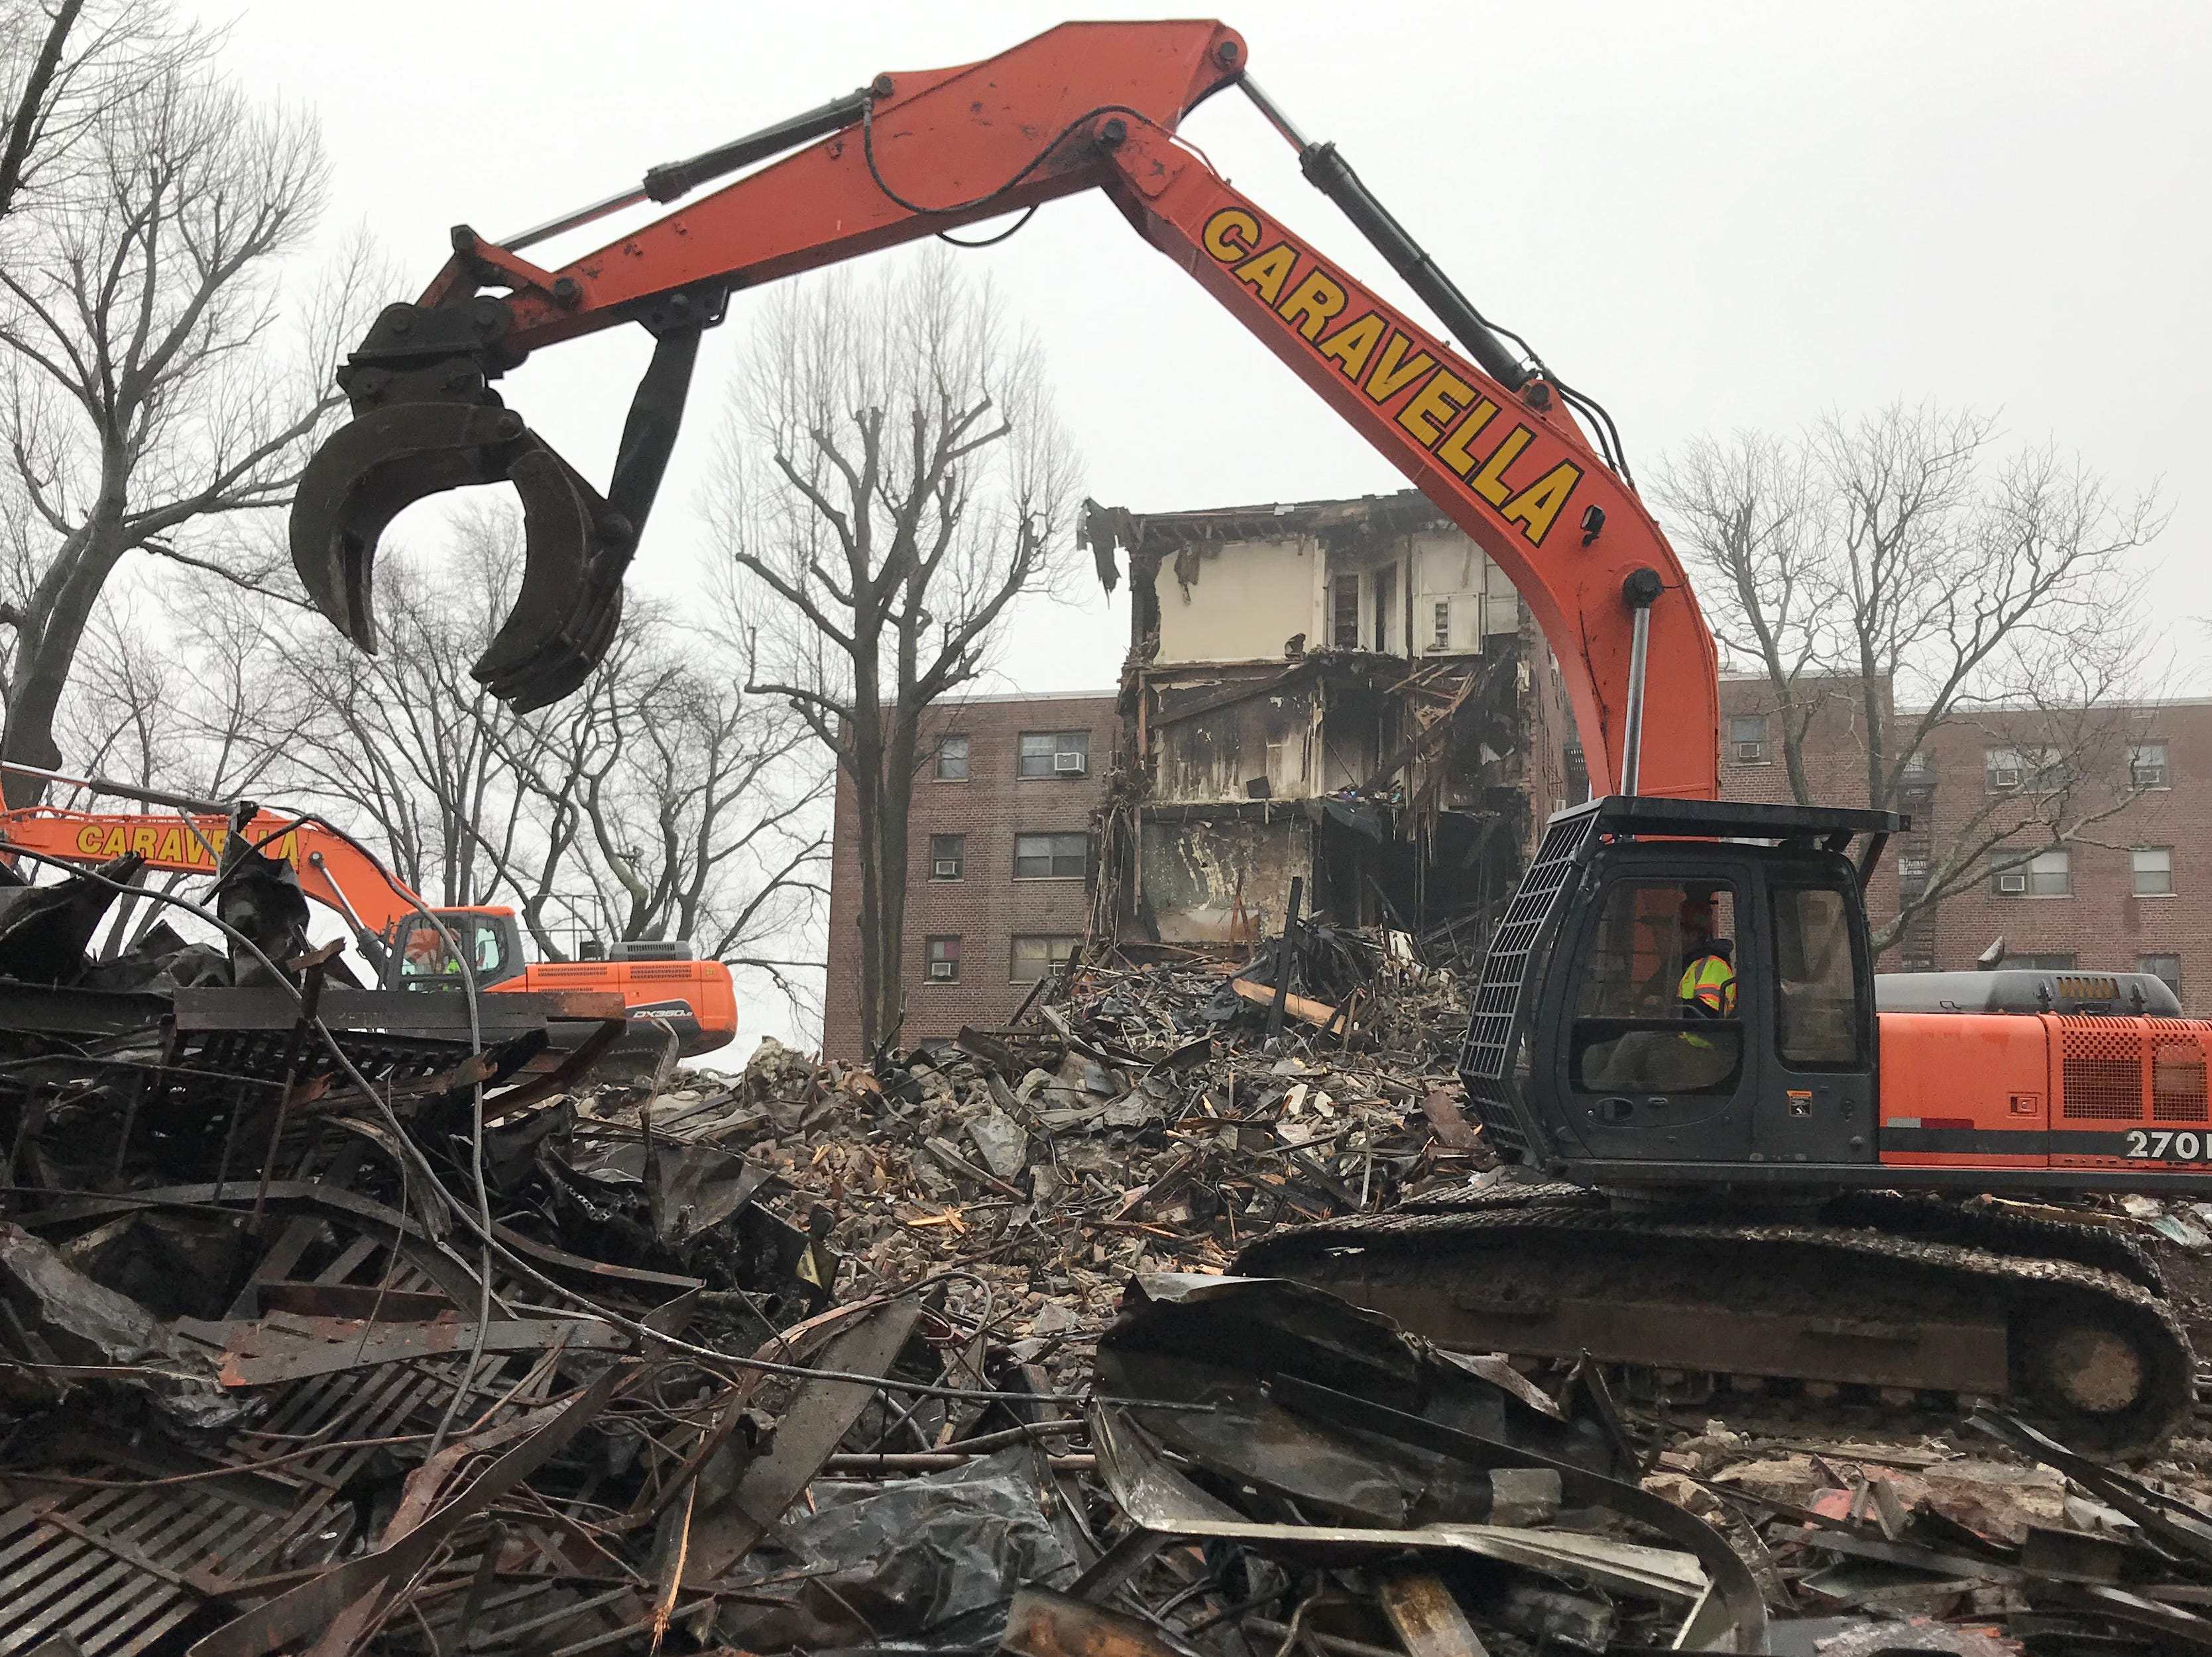 Demolition equipment is tearing down part of the apartment complex that was heavily damaged by the fire that broke out on February 14, 2019. irefighters are hitting hot spots the morning after a fire broke out at an apartment complex on Edwin Ave in Fort Lee on Monday February 18, 2019.